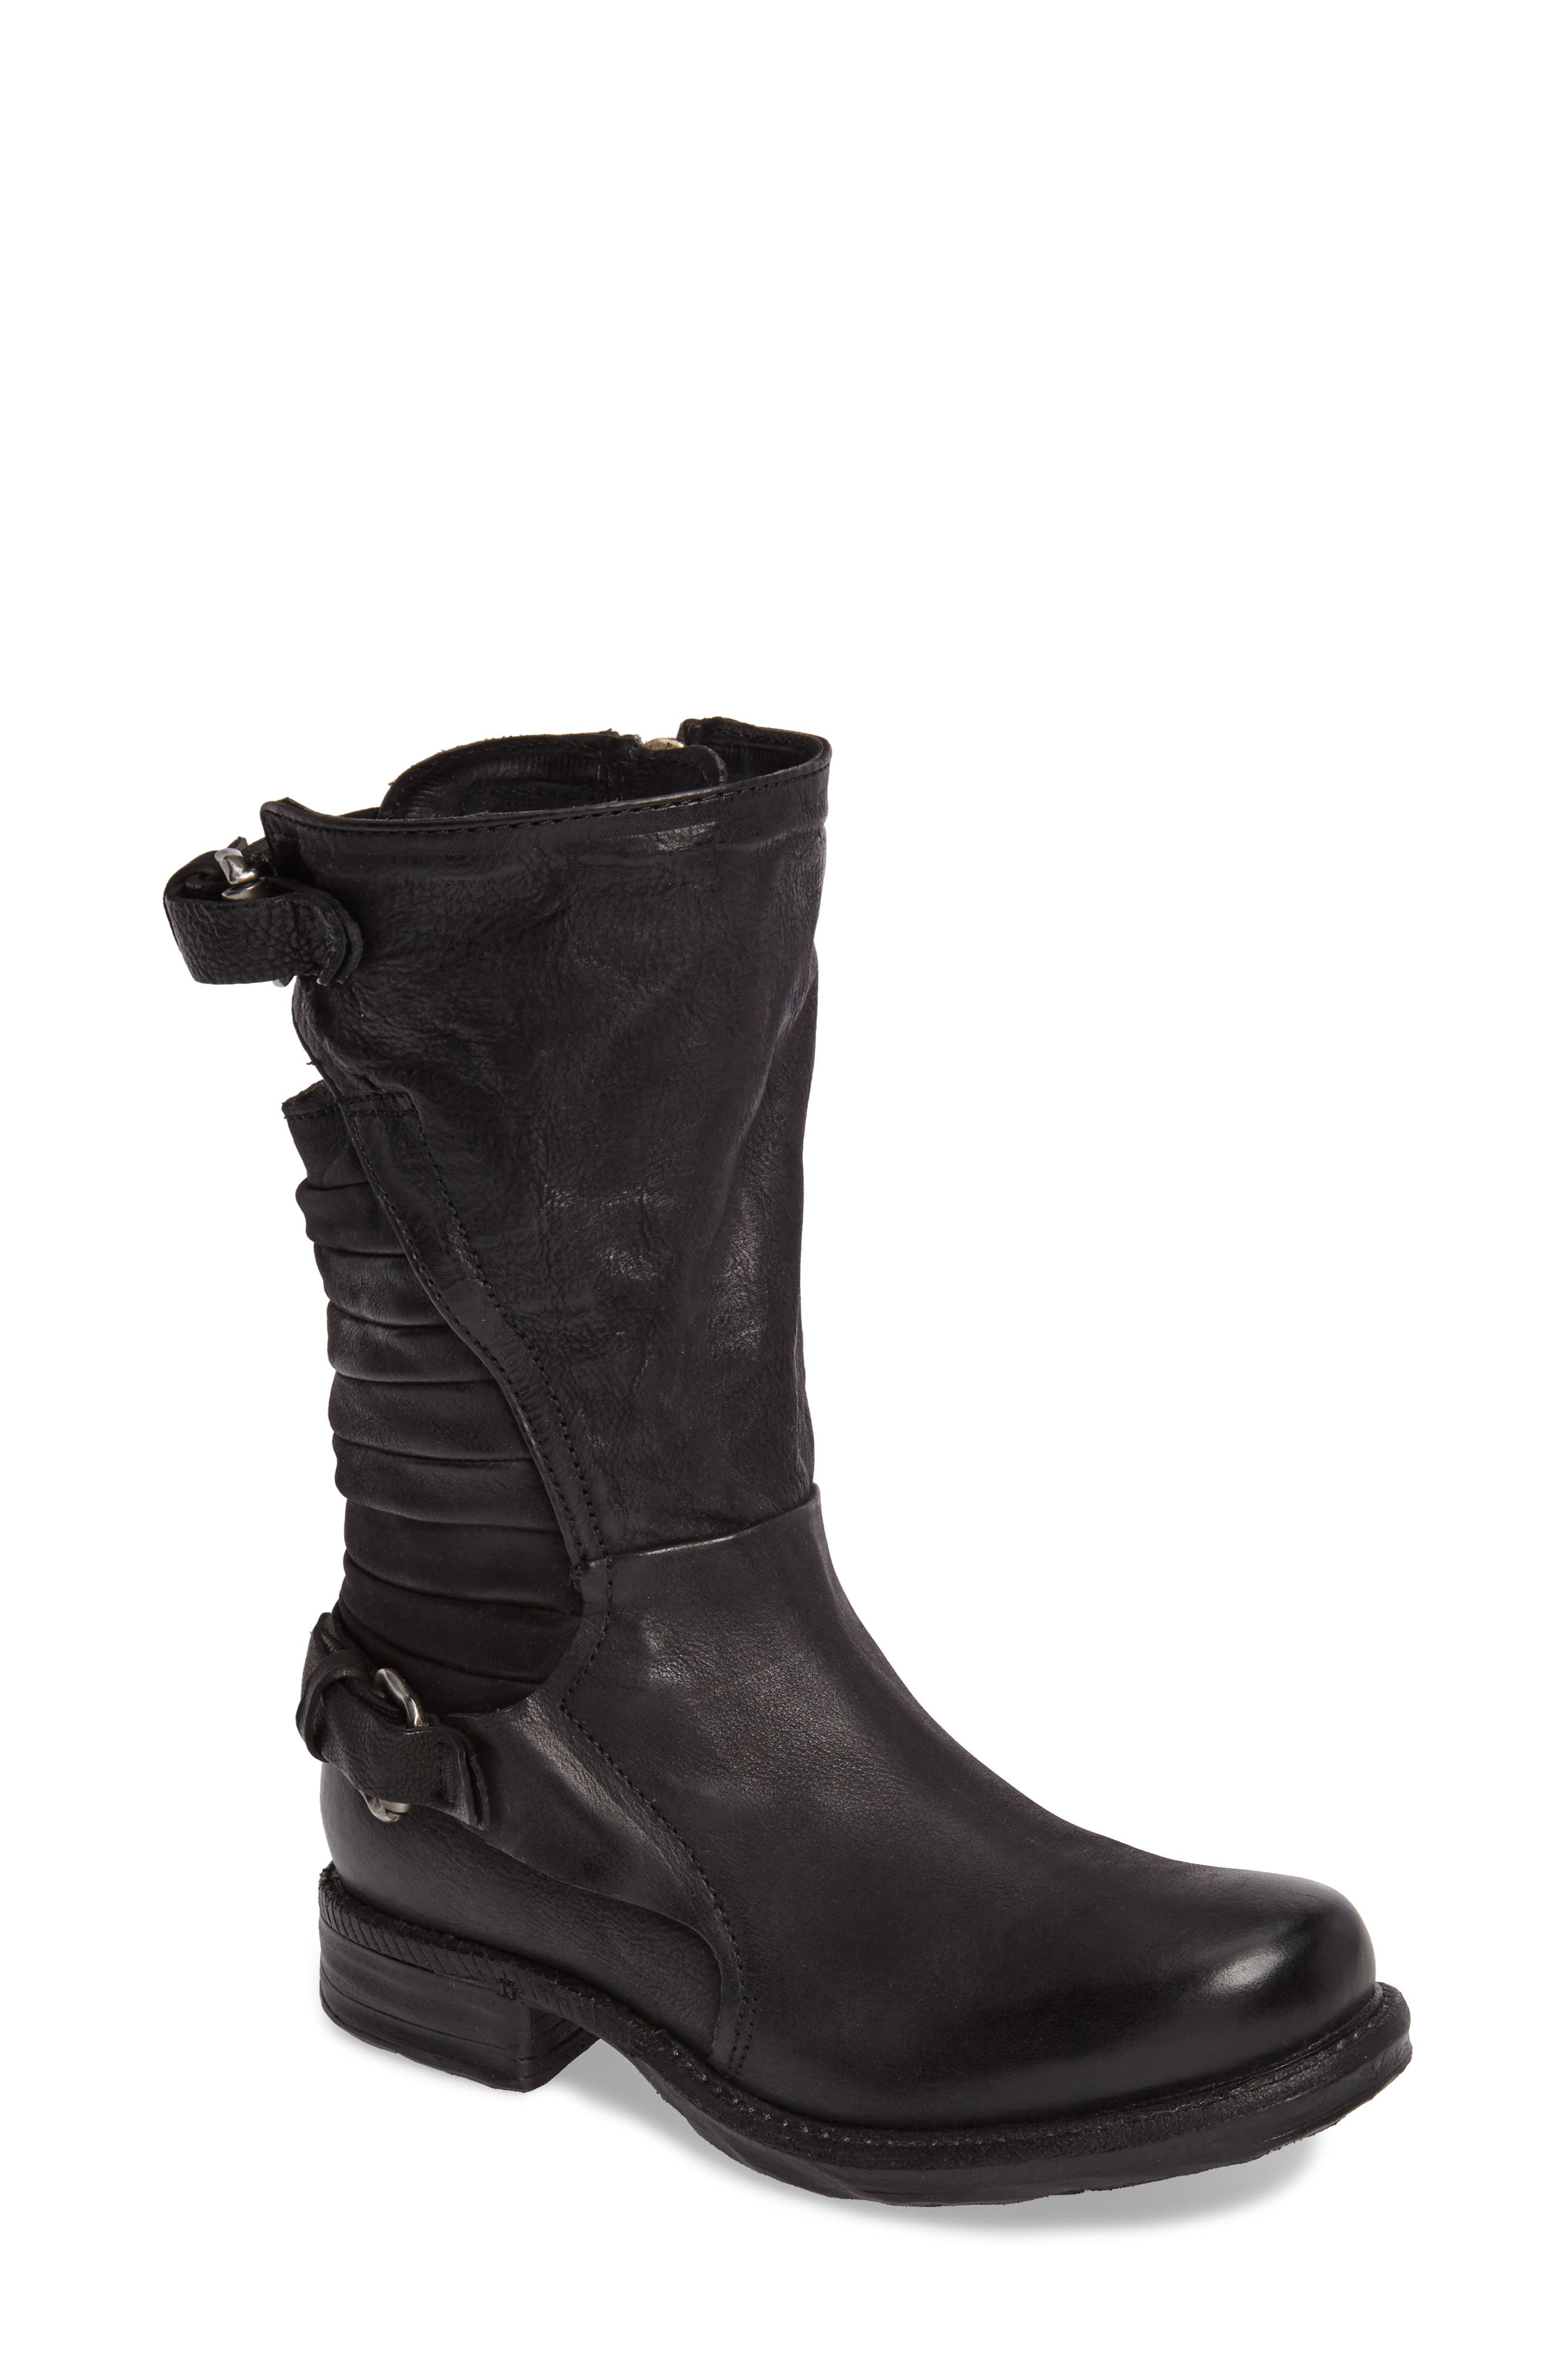 A.S. 98 Serge Boot,                         Main,                         color, 001